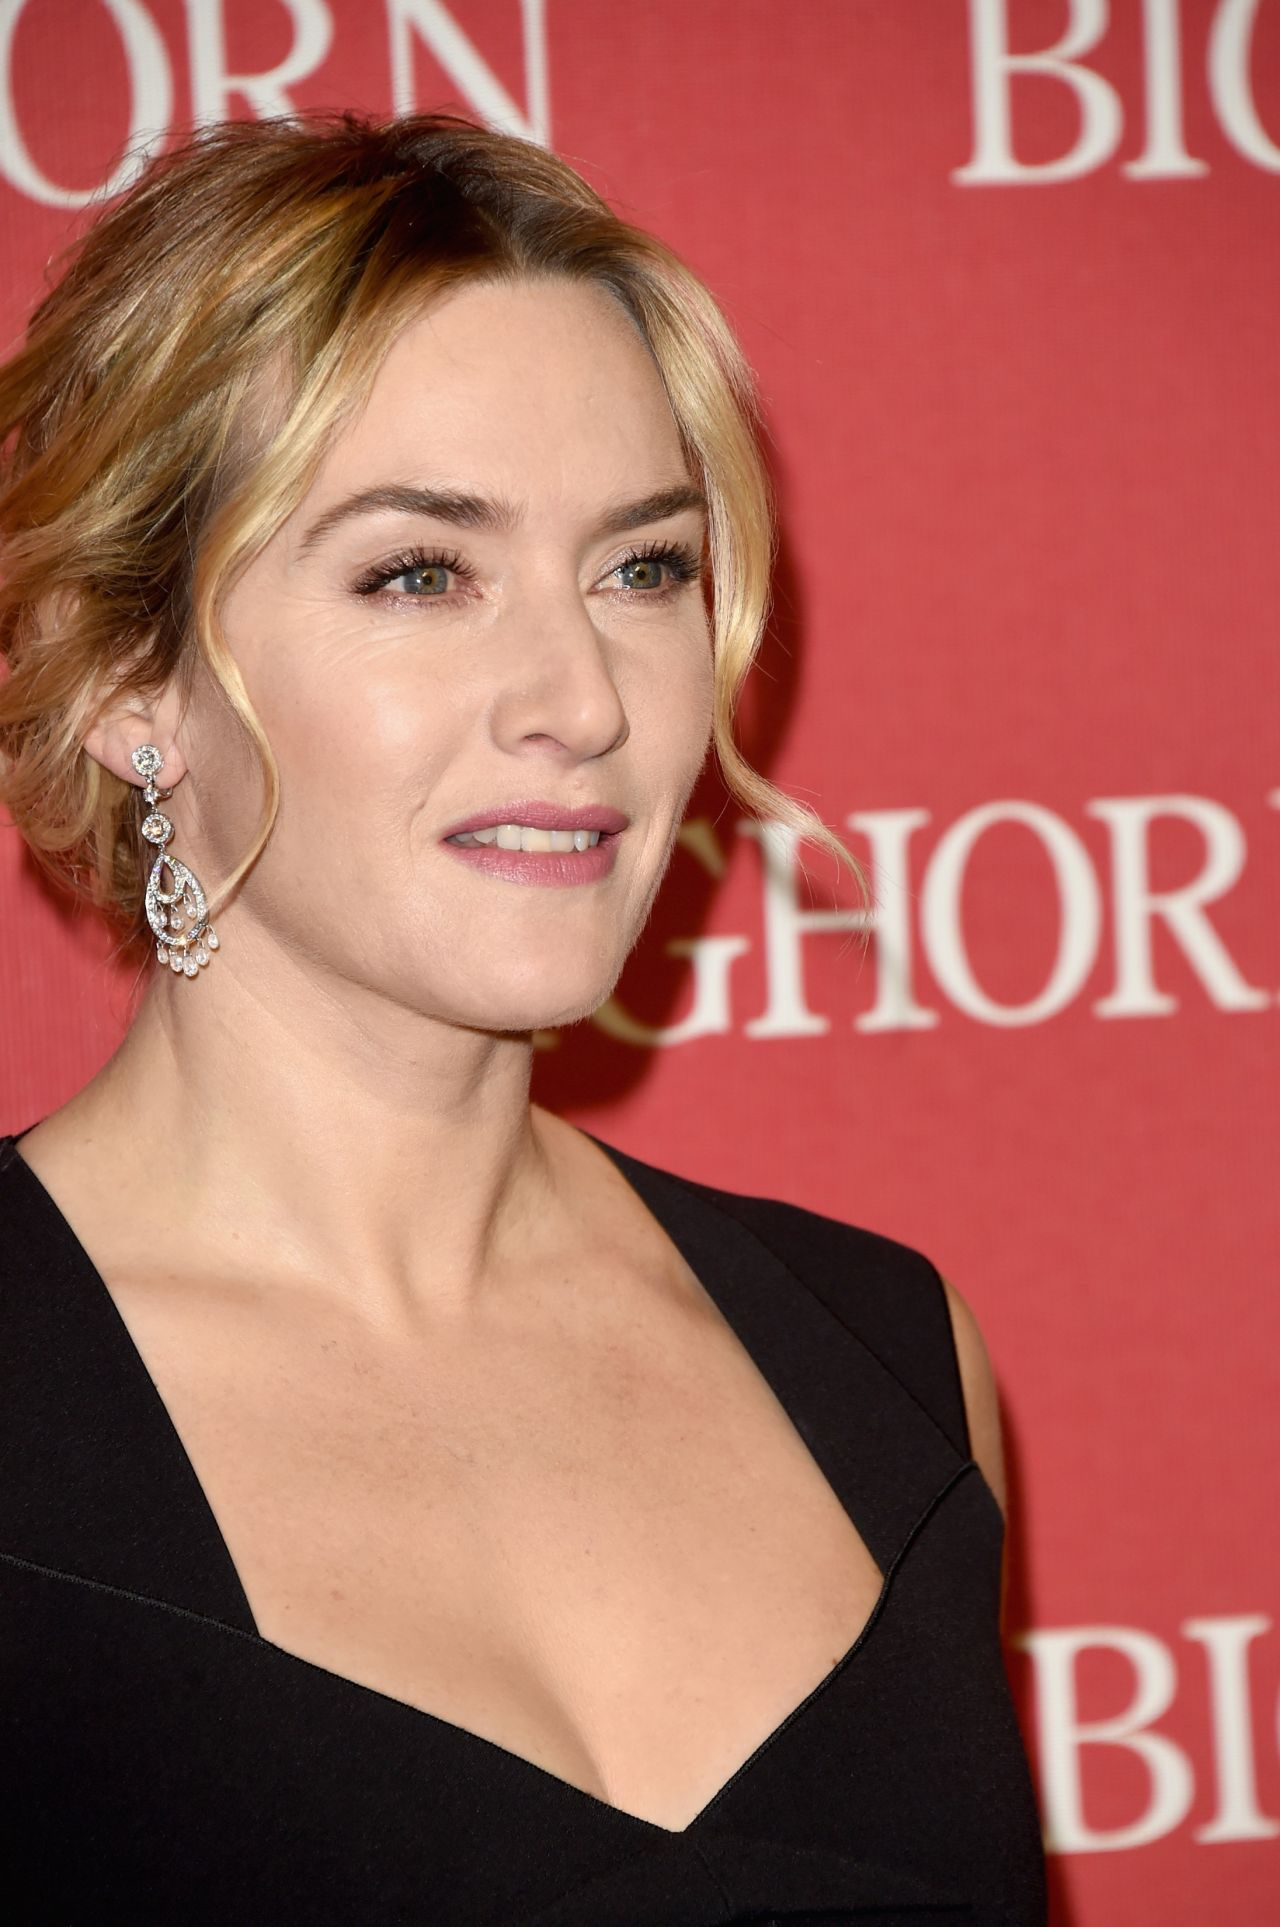 Kate winslet dating 2016